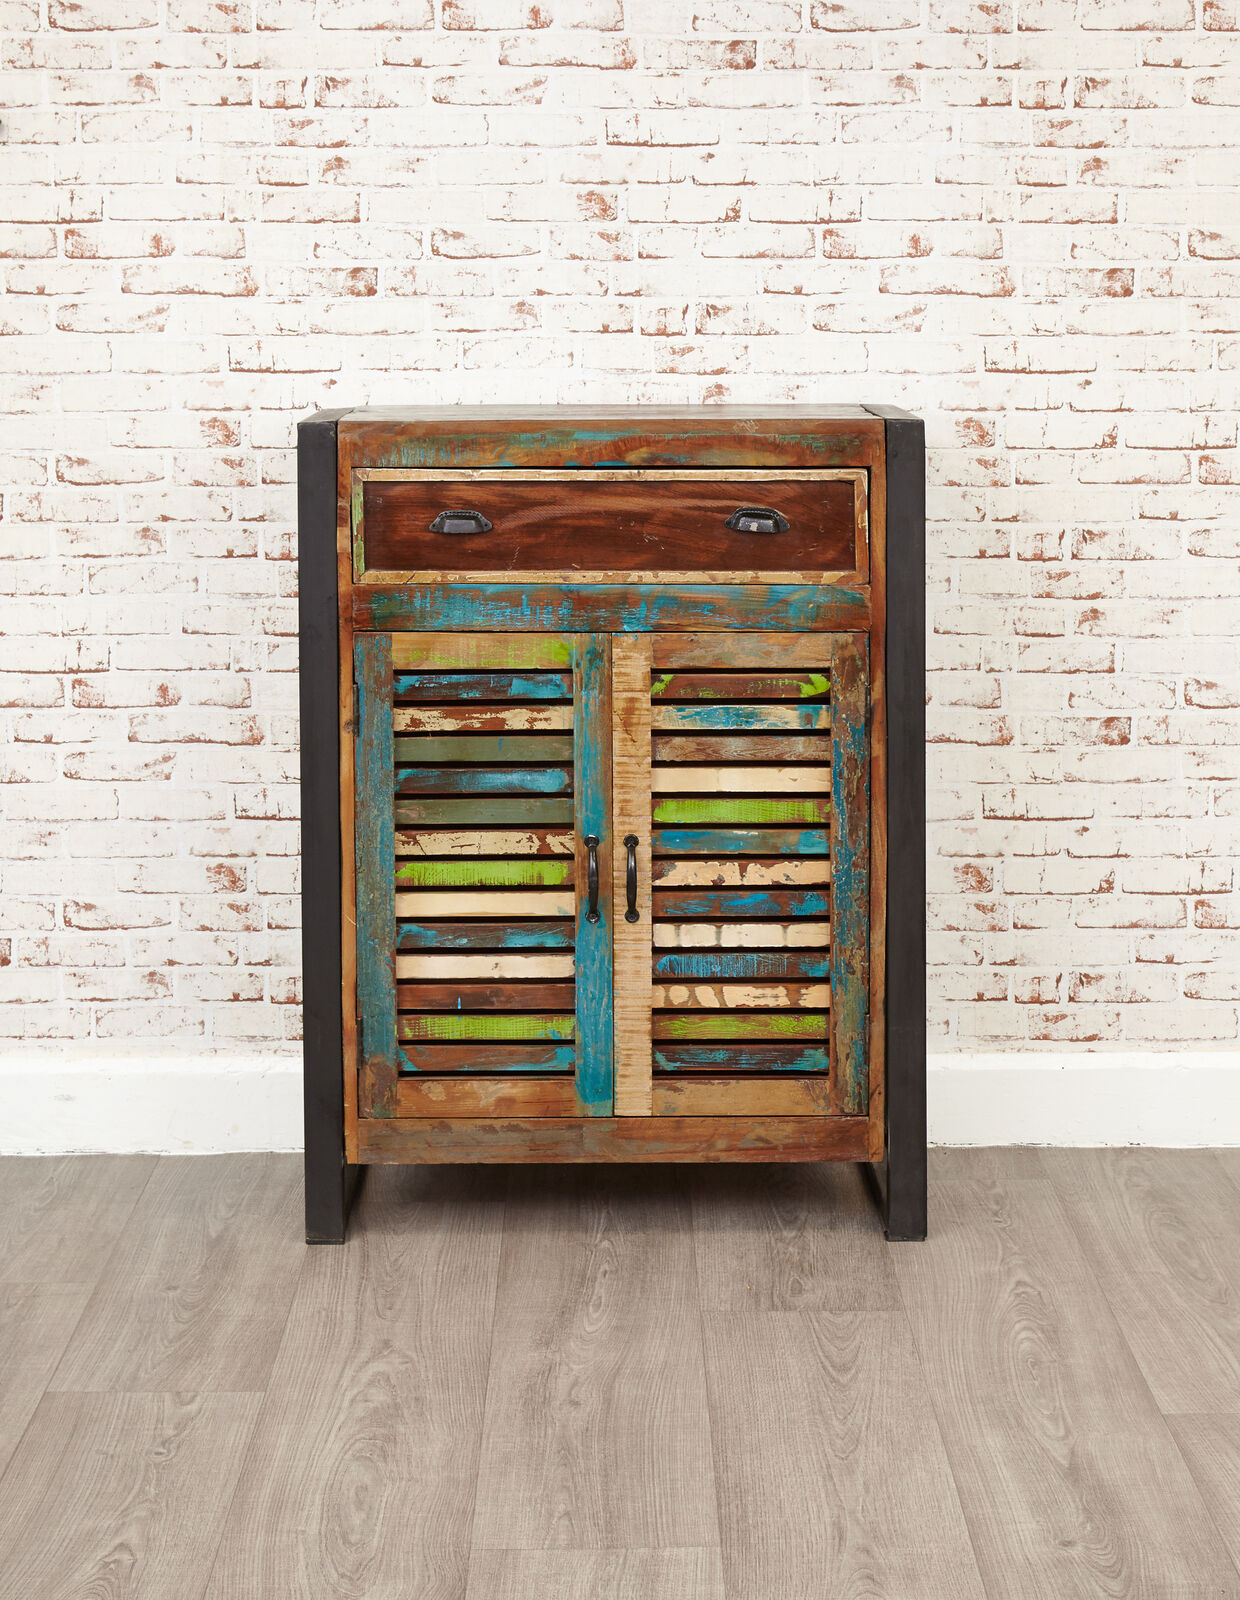 Details About Urban Chic Reclaimed Wood Shoe Cabinet Unit Storage Steel Frame